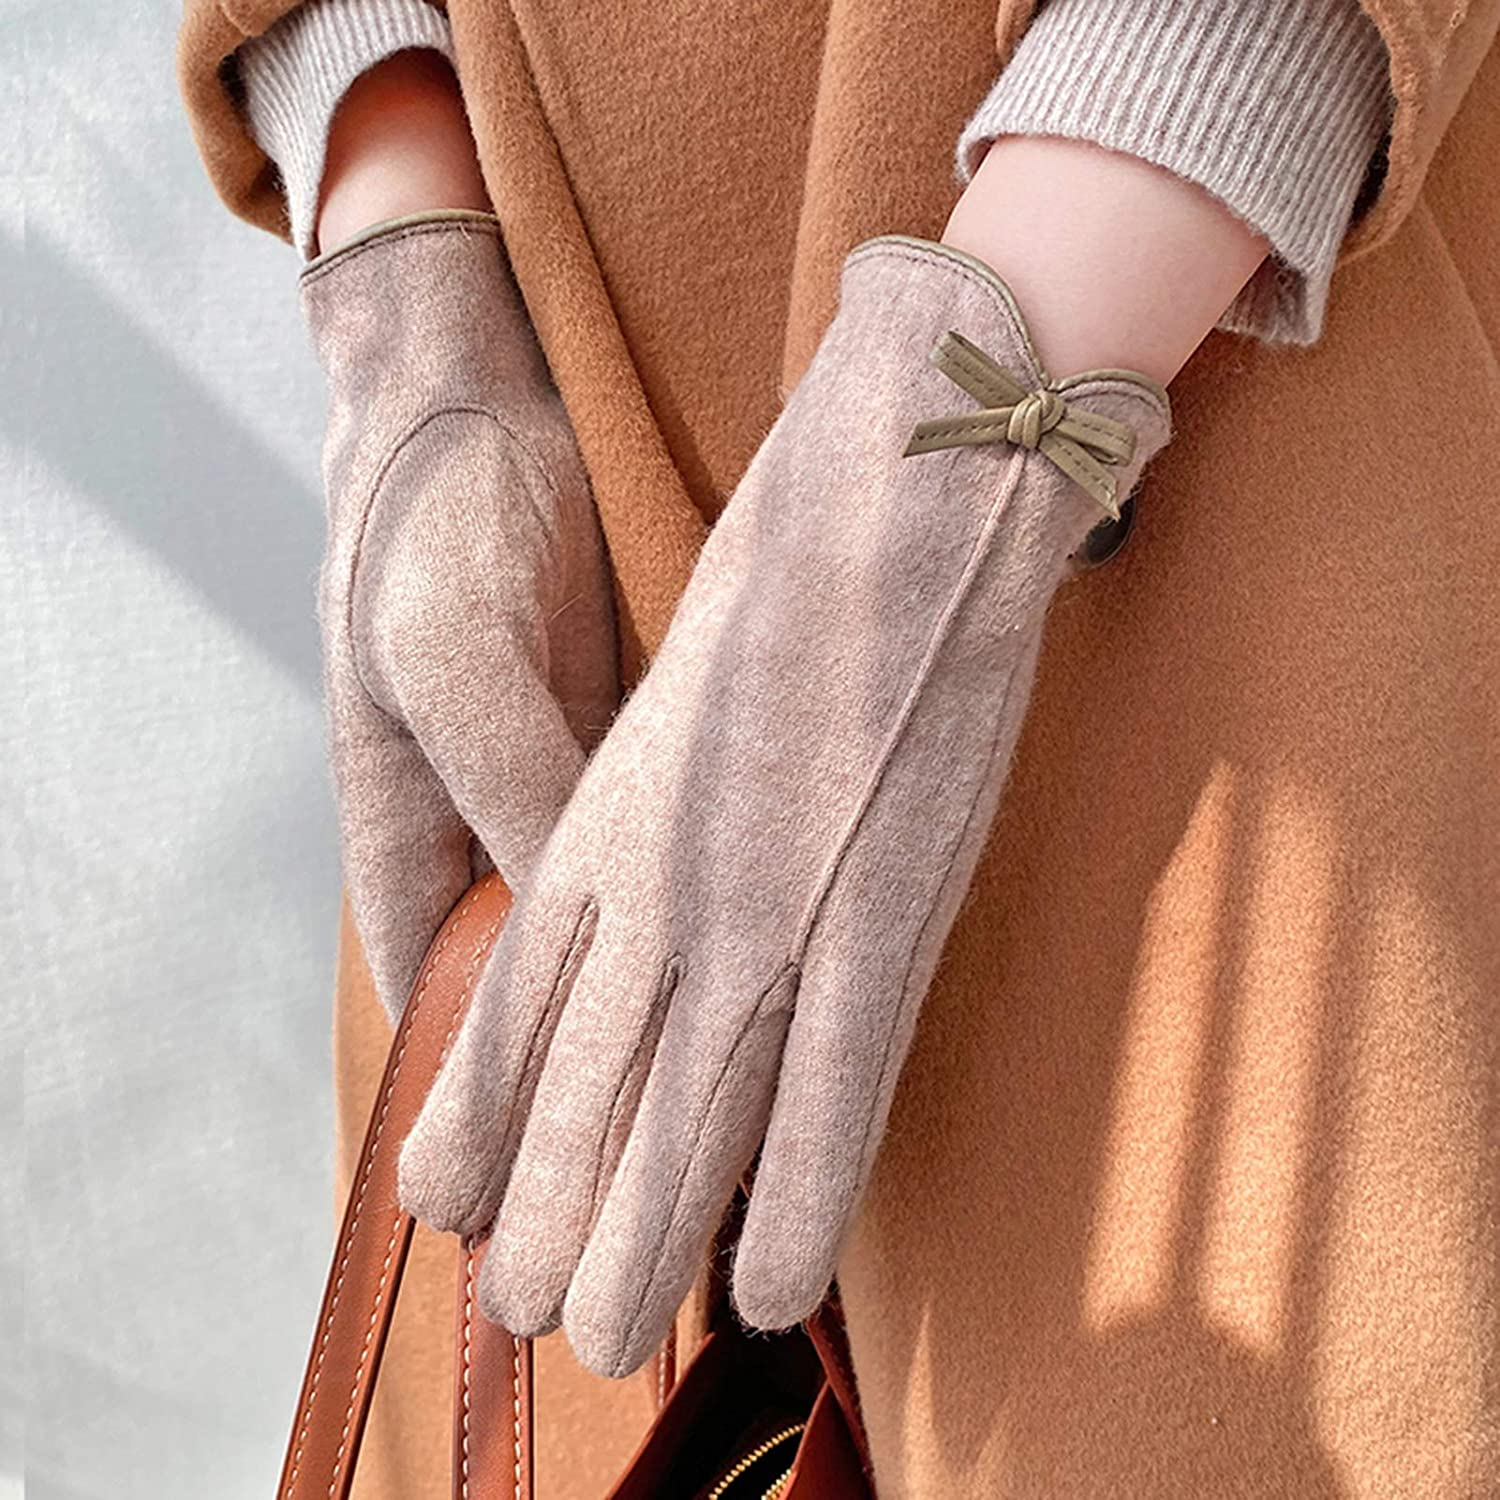 FOLDING Gloves Women's Warm Touch Screen Gloves for Smartphone Text Messages-Soft Suede Gloves (Color : Khaki)